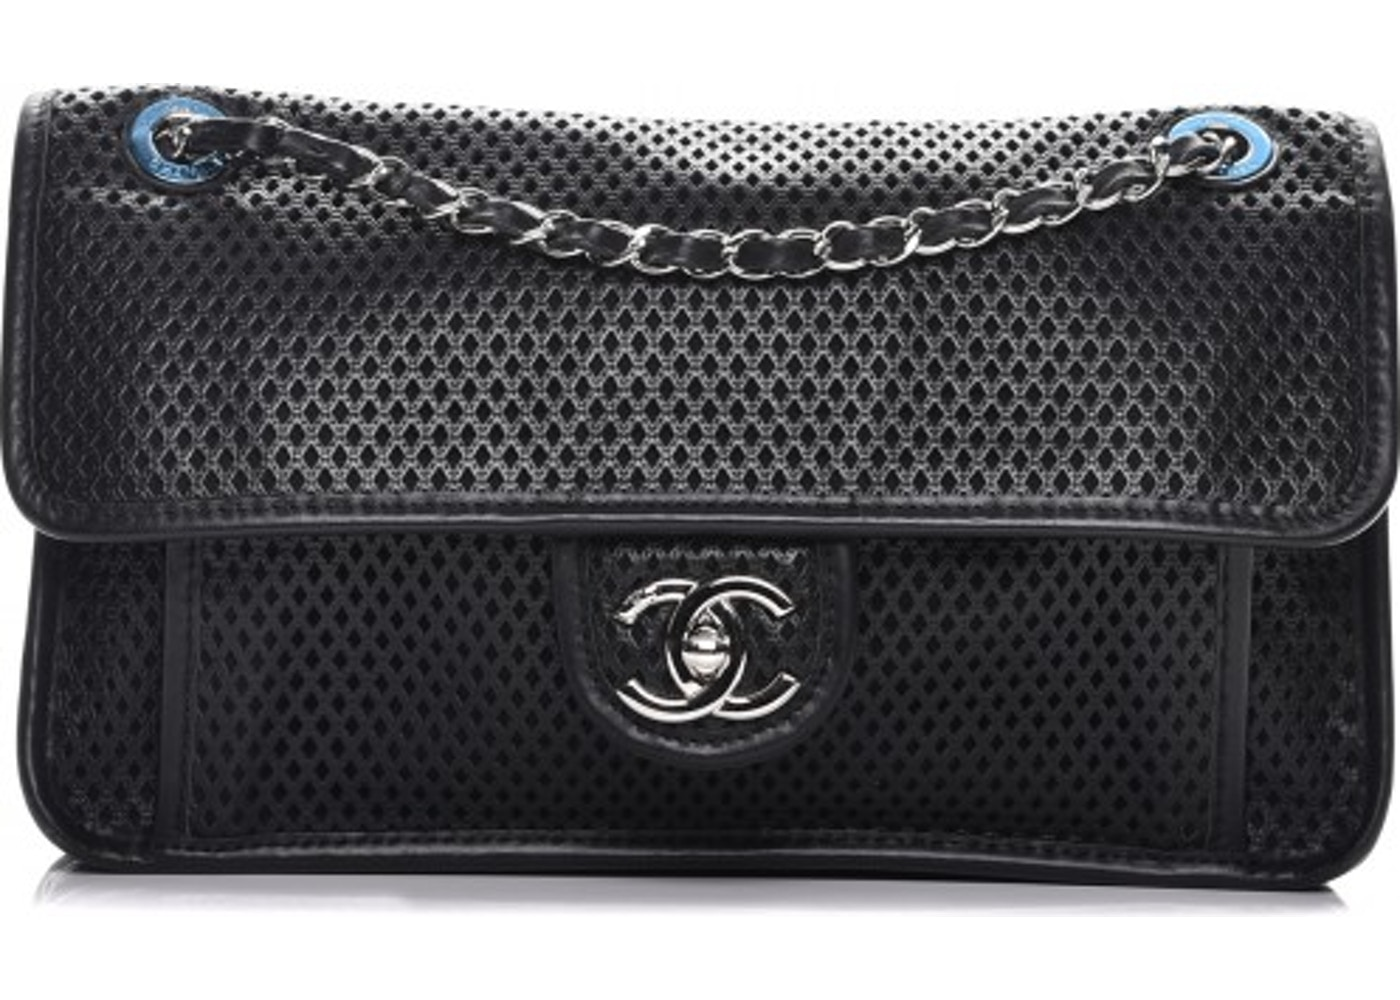 0796c2d733d0 Chanel Up In The Air Flap Perforated Large Black. Perforated Large Black